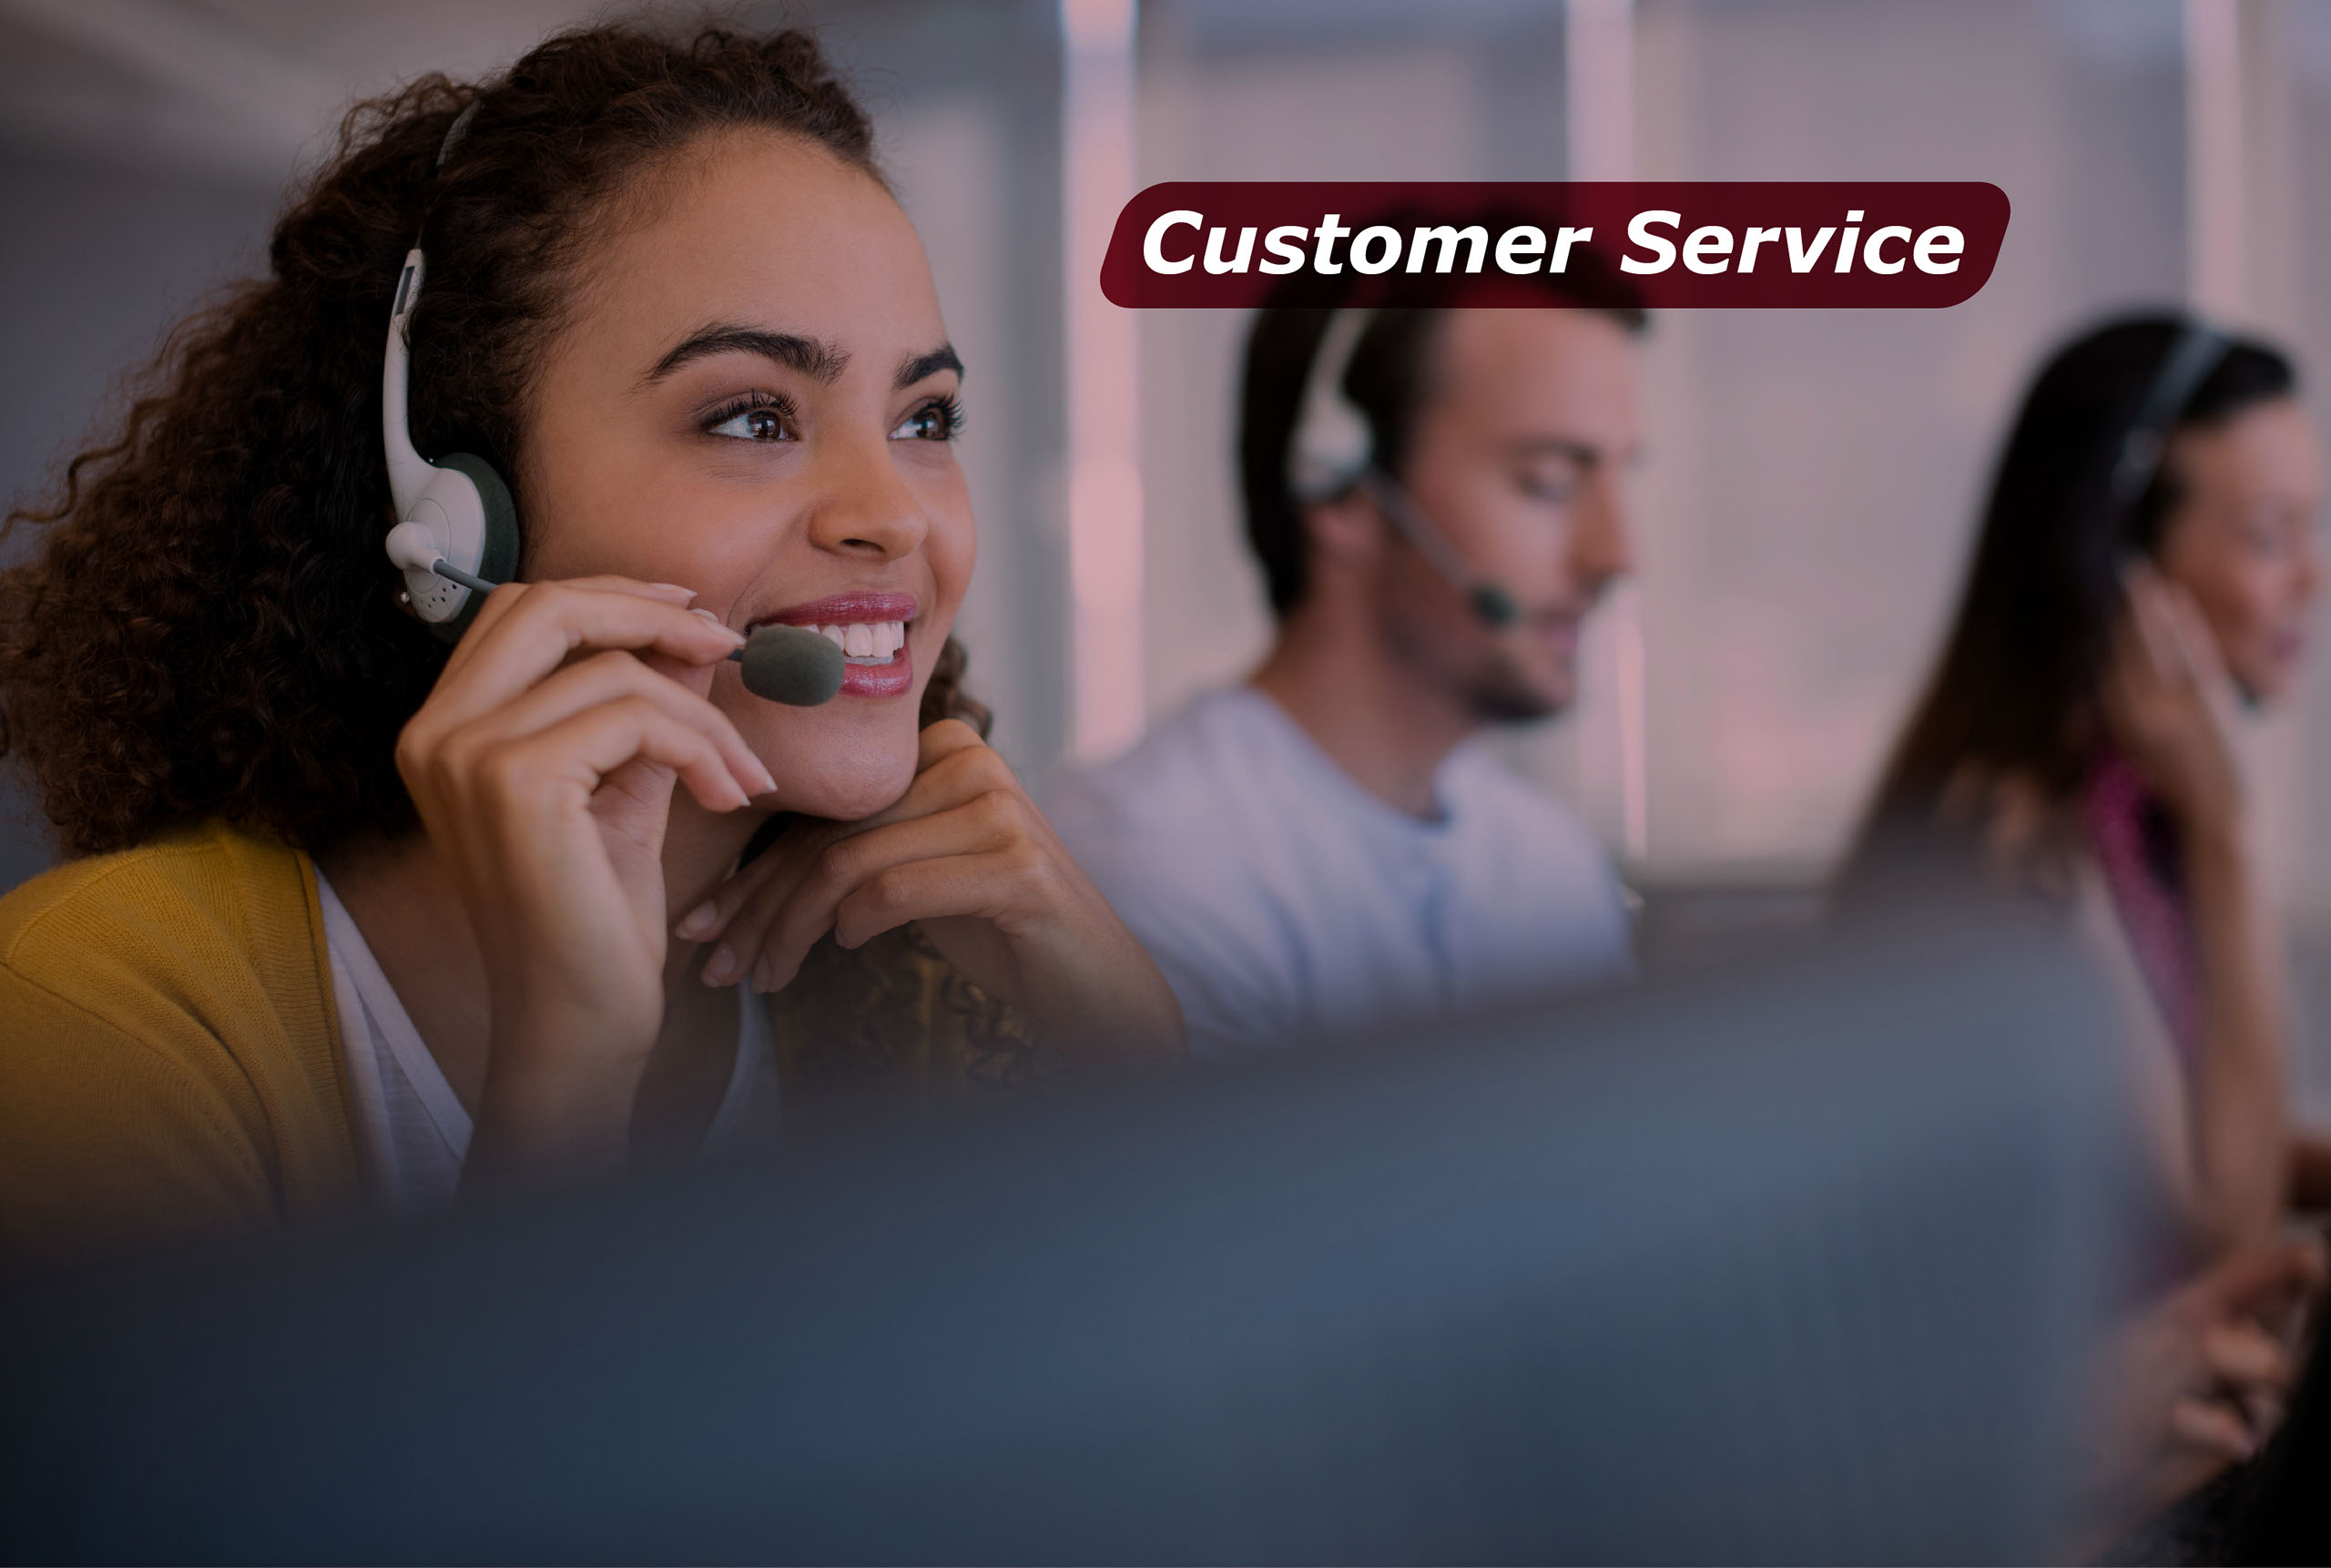 Inbound Customer Service Case Study